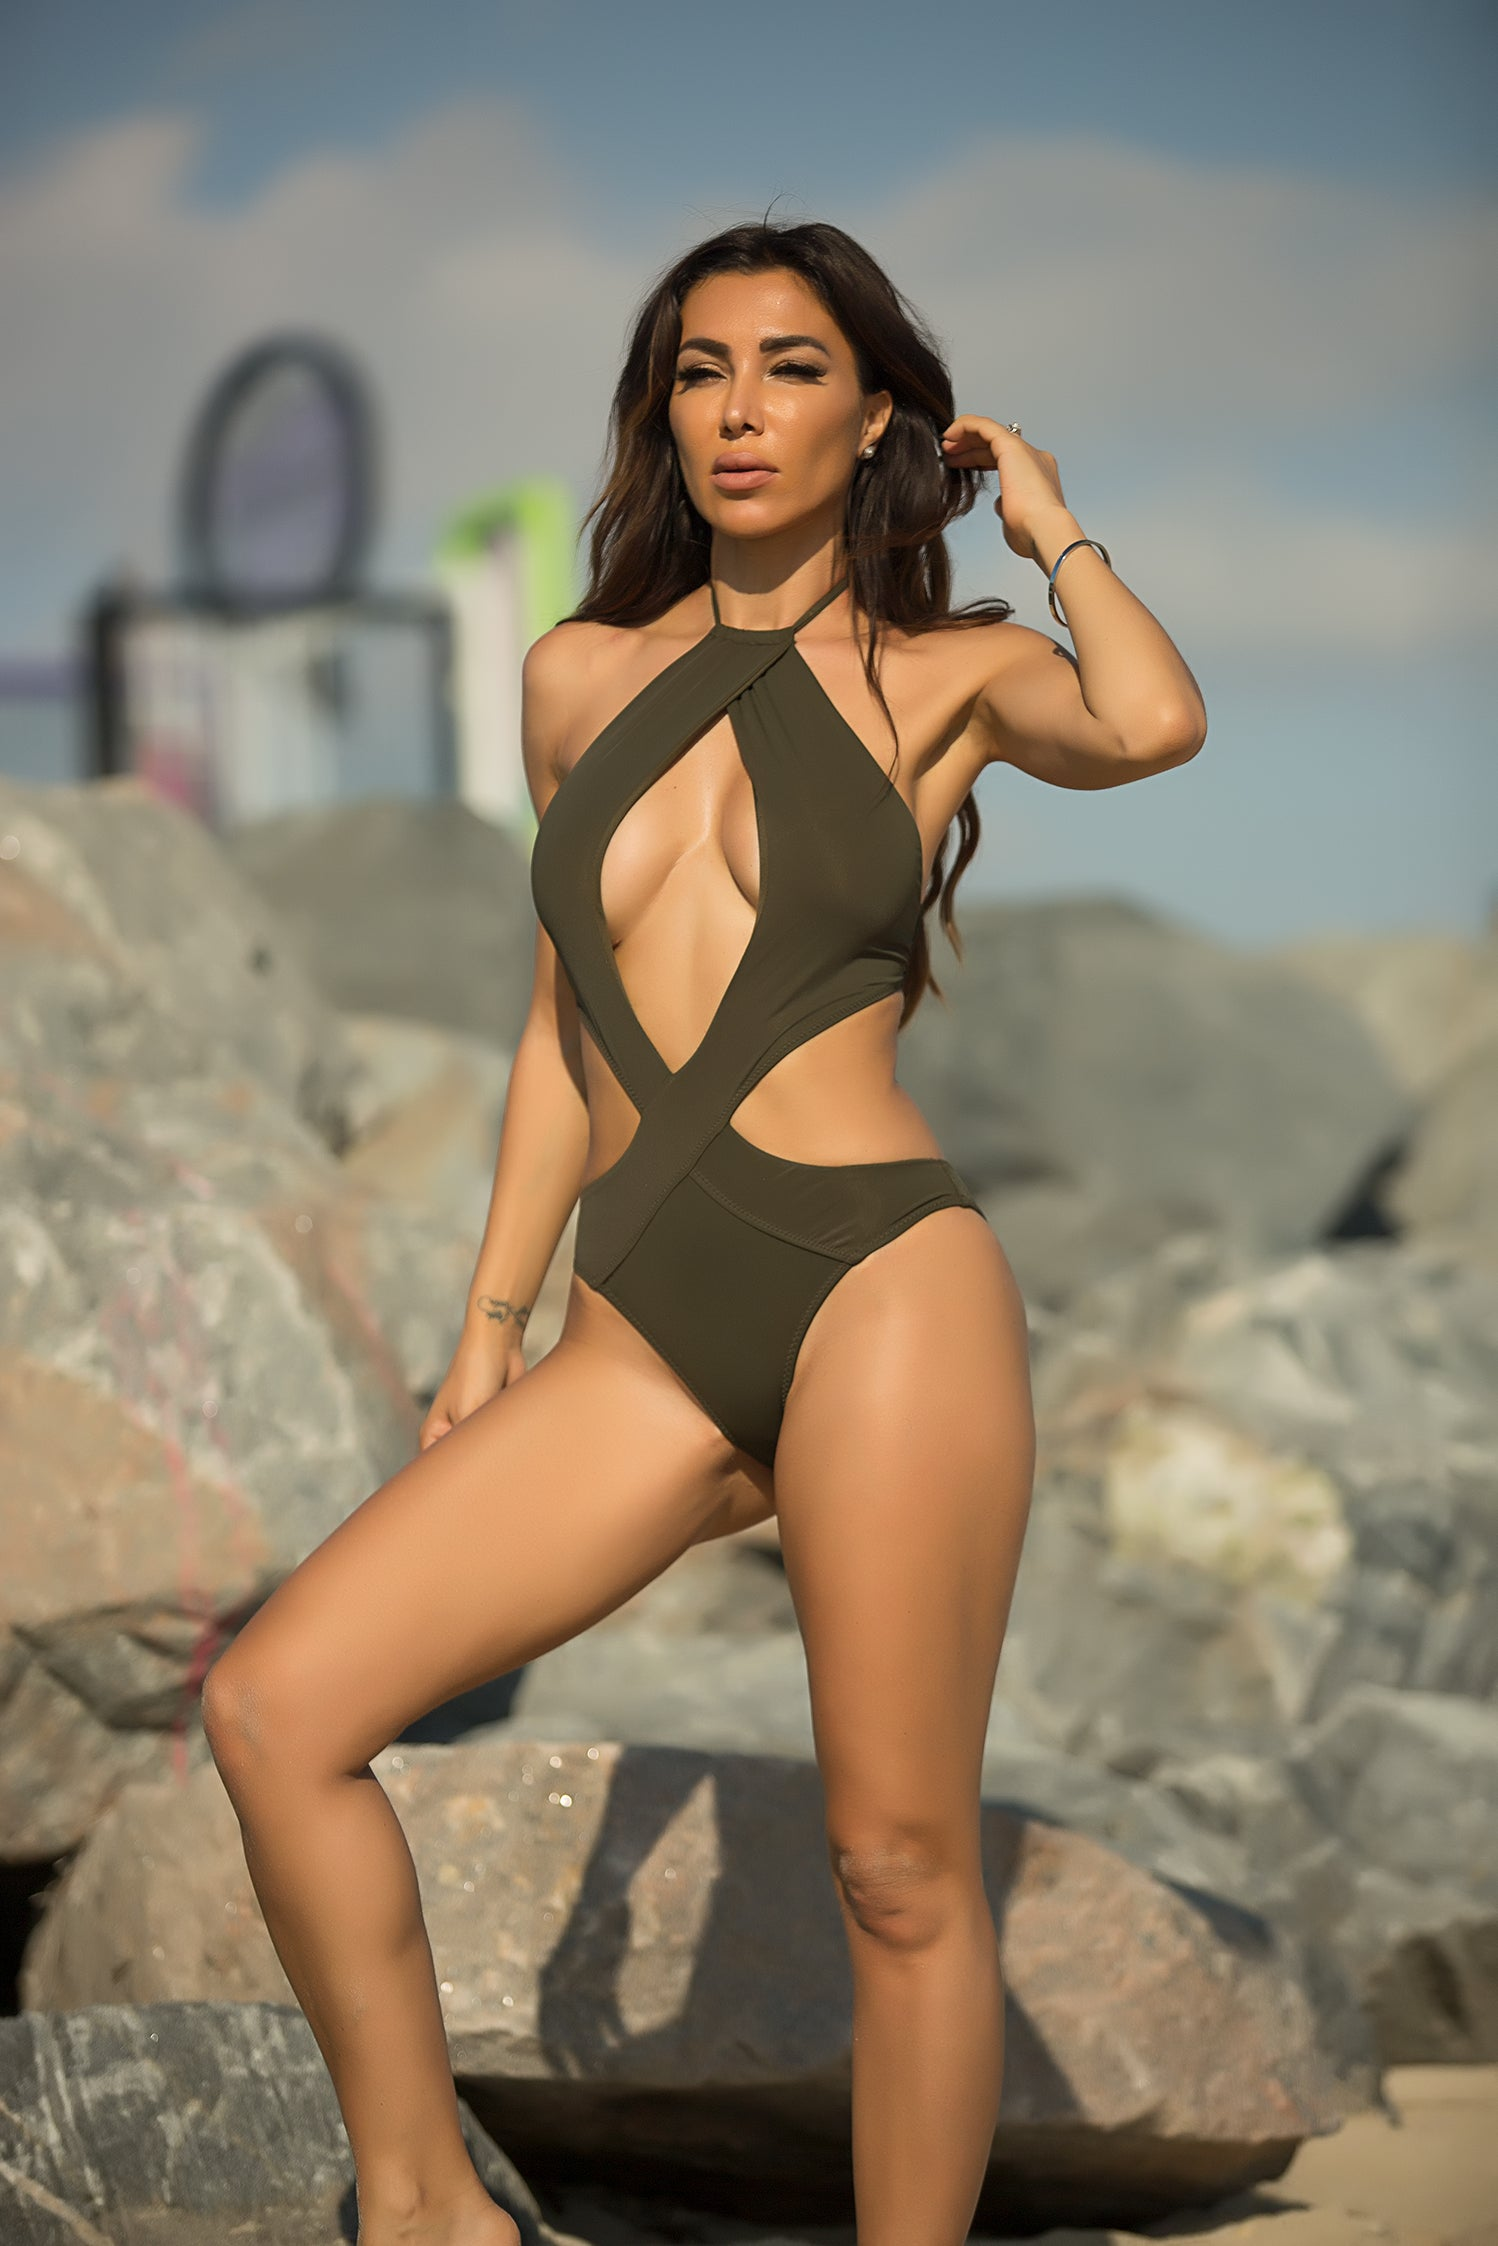 Felicia - Love Ocean Swimsuit - Semai House Of fashion